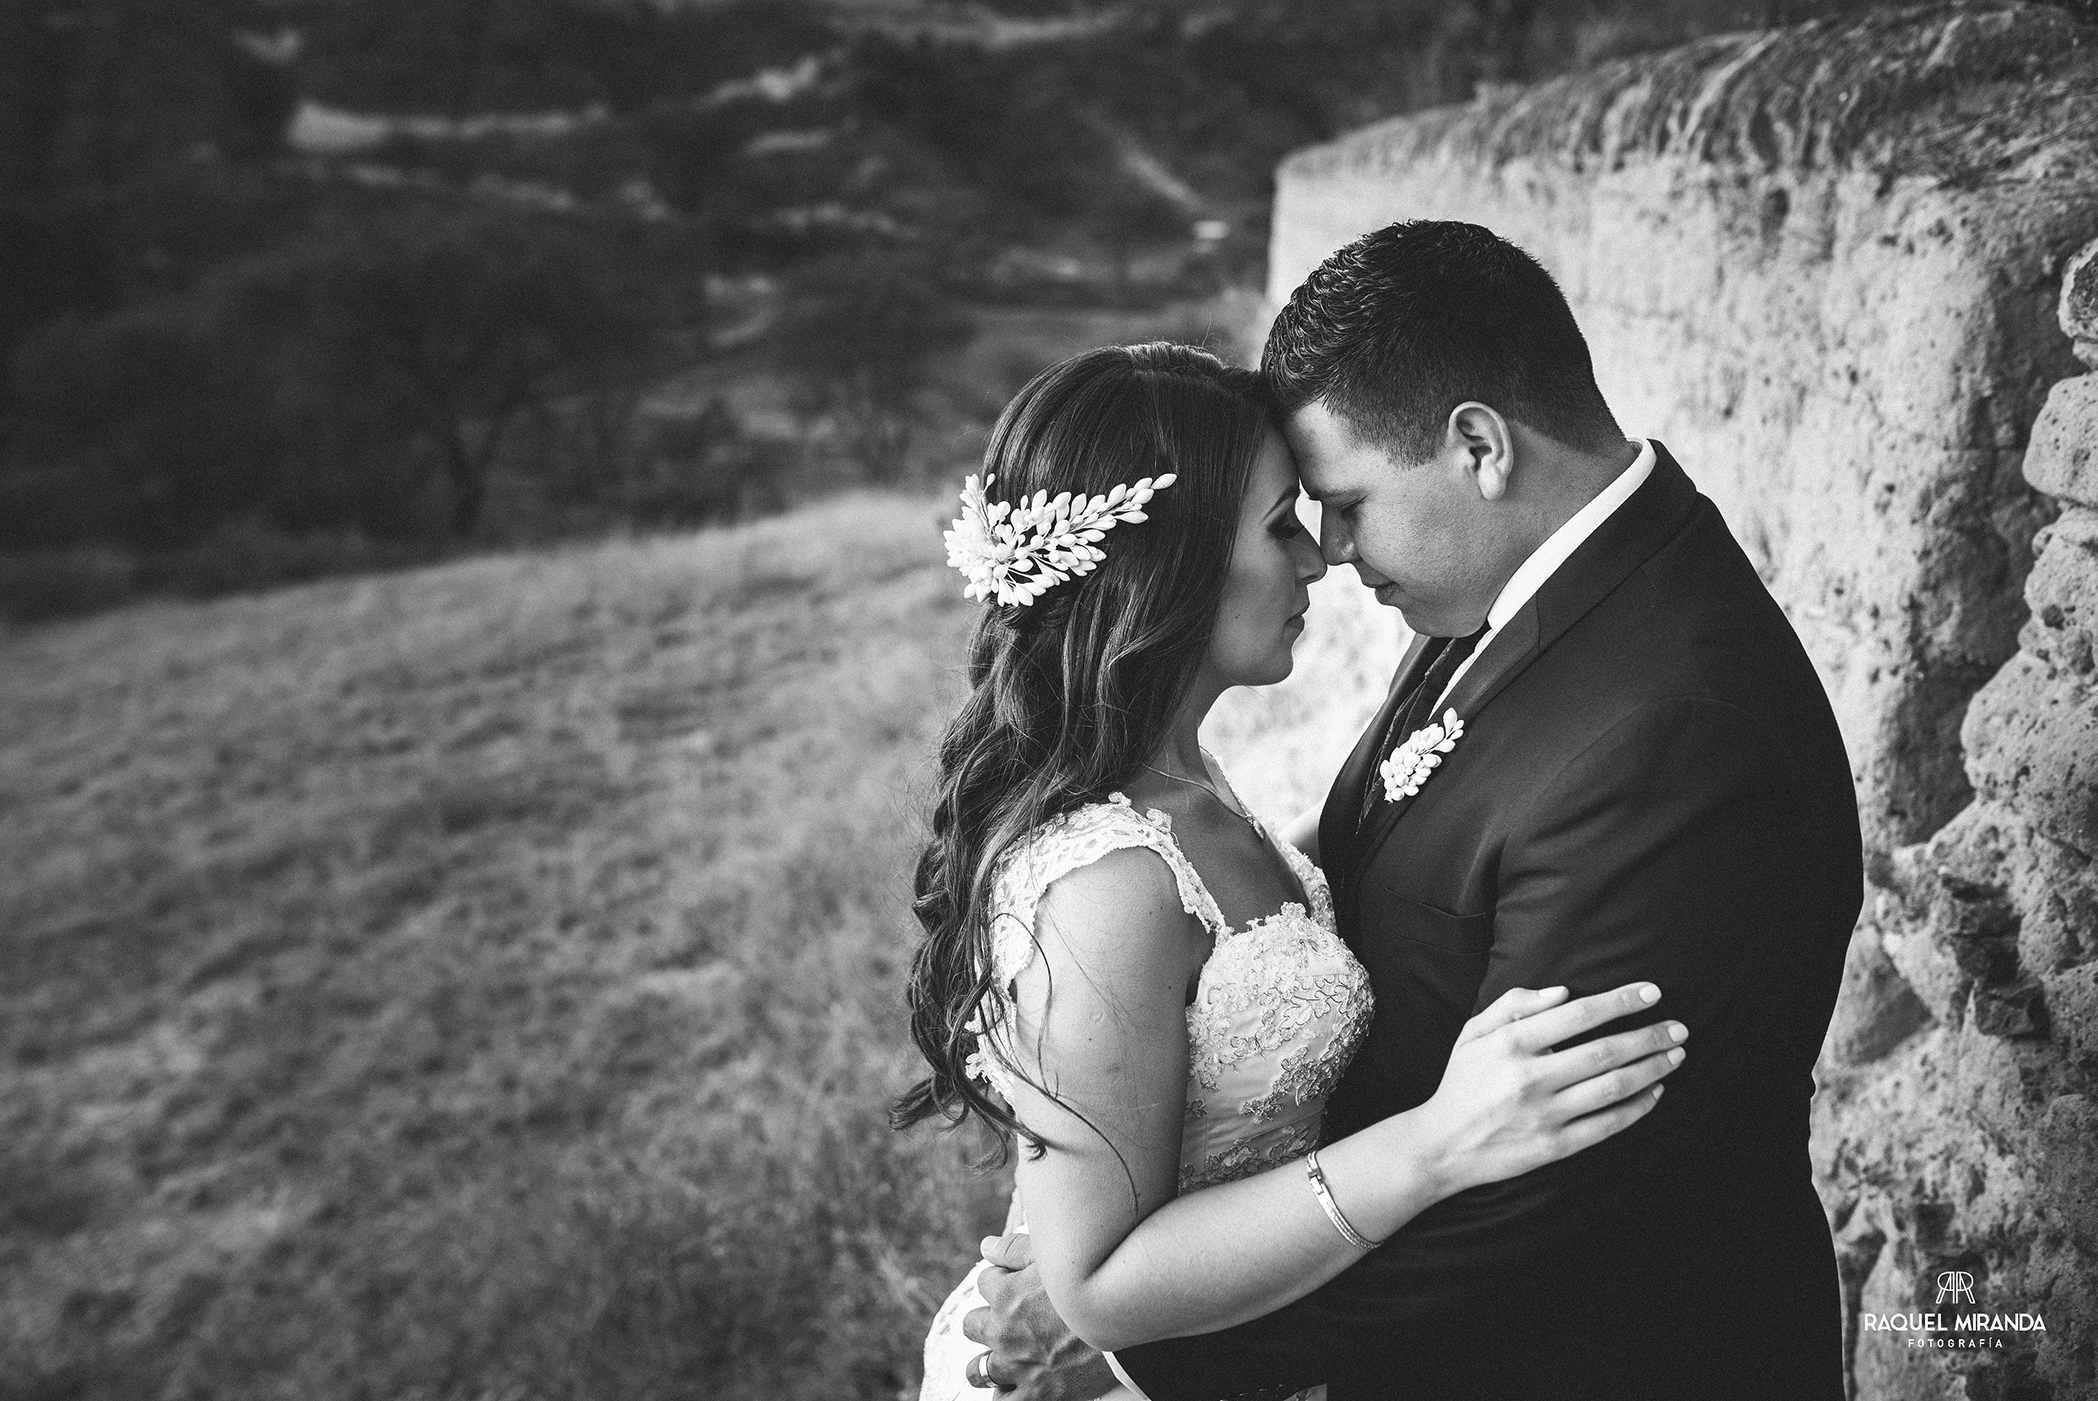 raquel miranda fotografía - trash the dress - nallely&victor-4.jpg